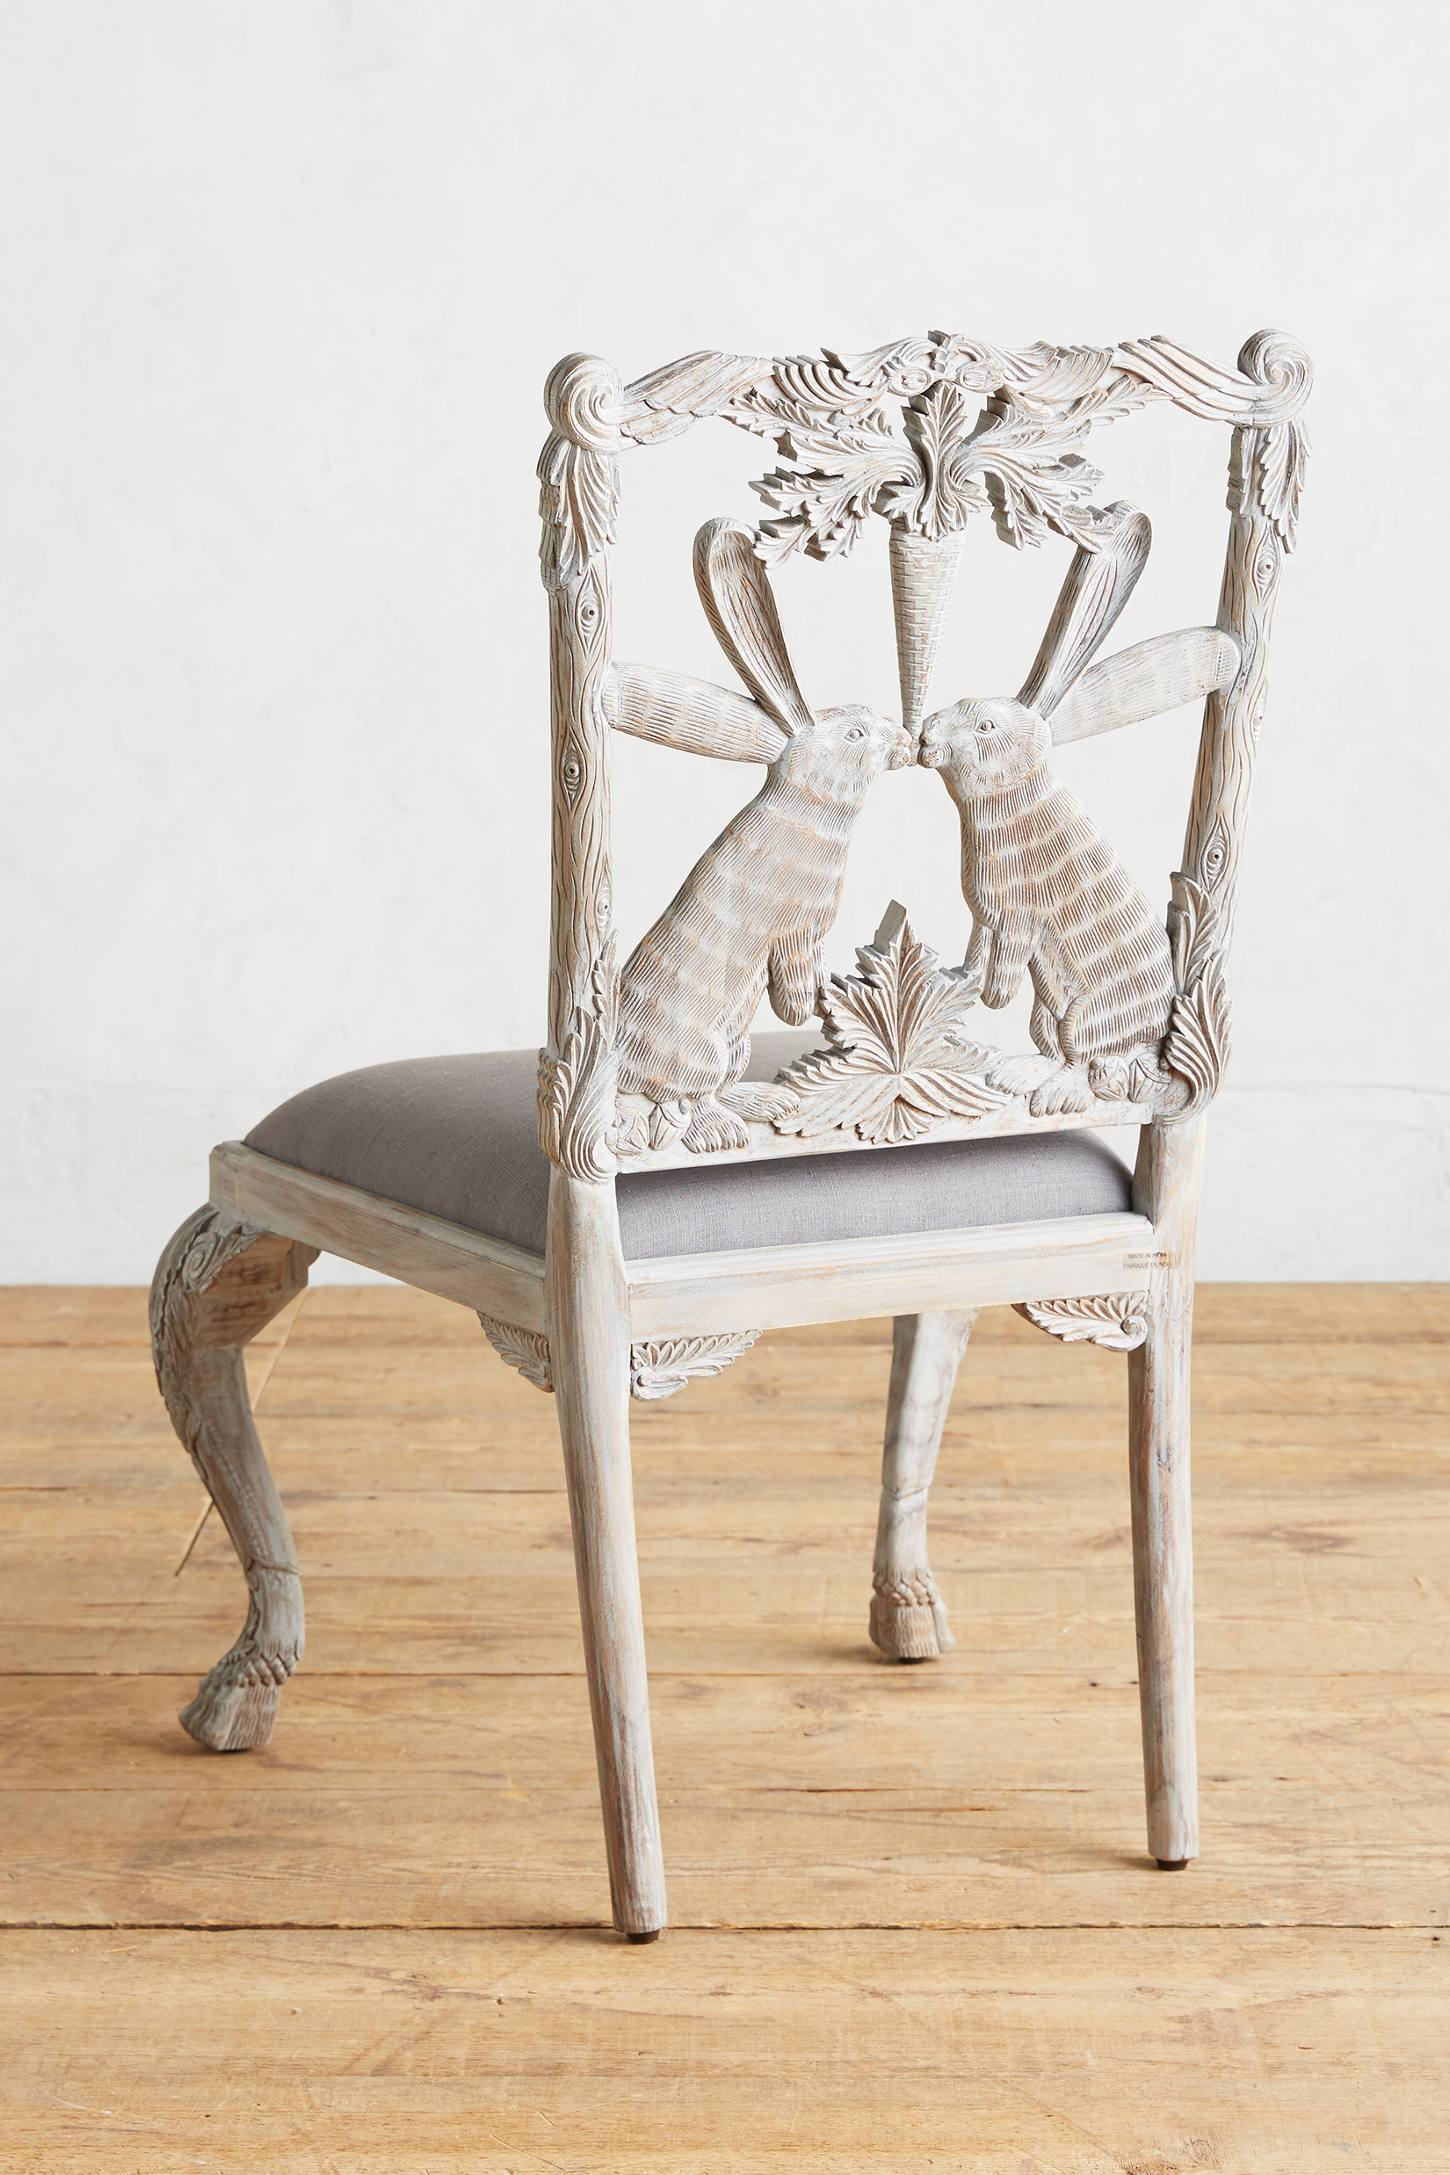 Slide View: 2: Handcarved Menagerie Rabbit Dining Chair